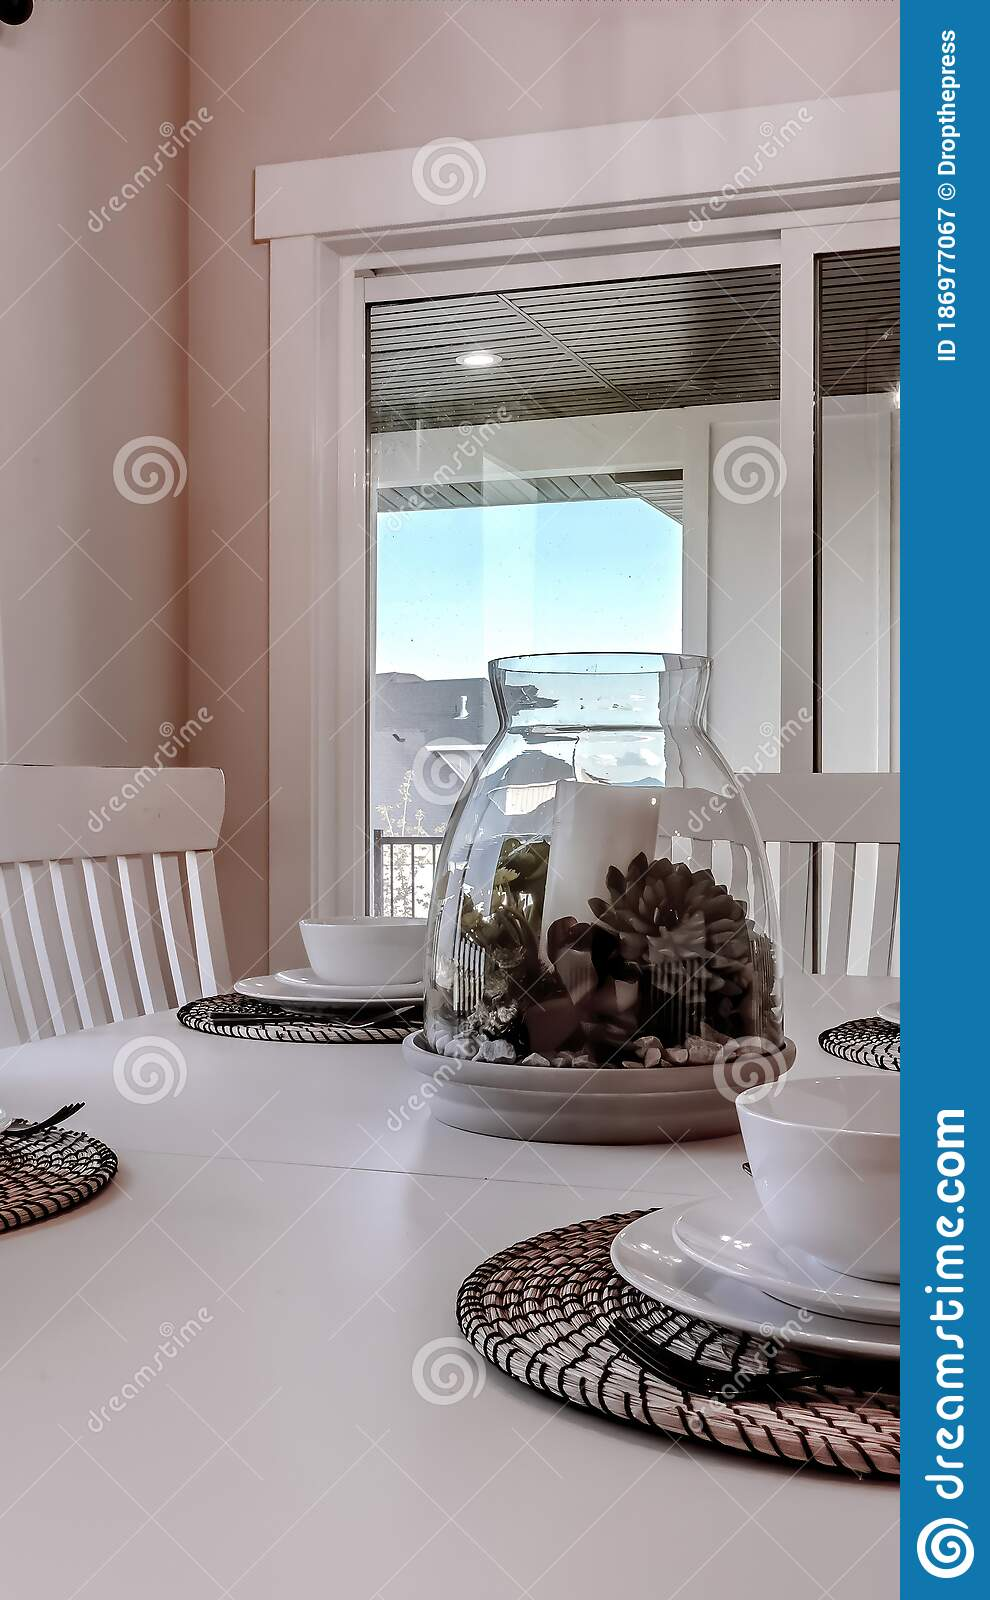 Vertical Dining Table With Chairs And Tableware Arranged Around A Decorative Centerpiece Stock Image Image Of Snow Knife 186977067